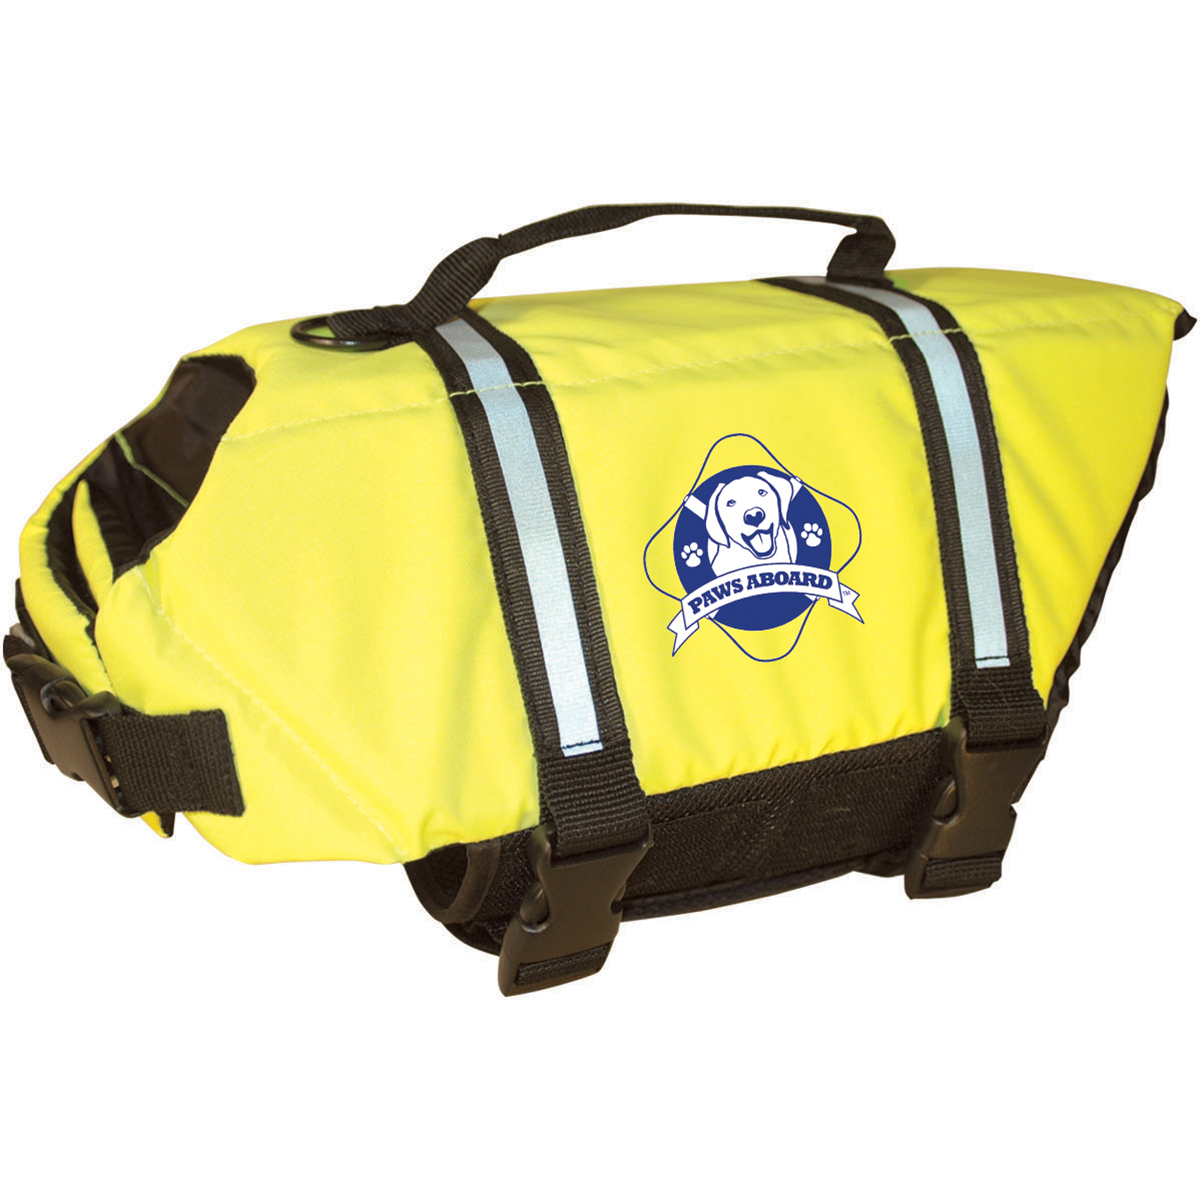 Paws Aboard Doggy Life Jacket Extra Large-Safety Neon Yellow